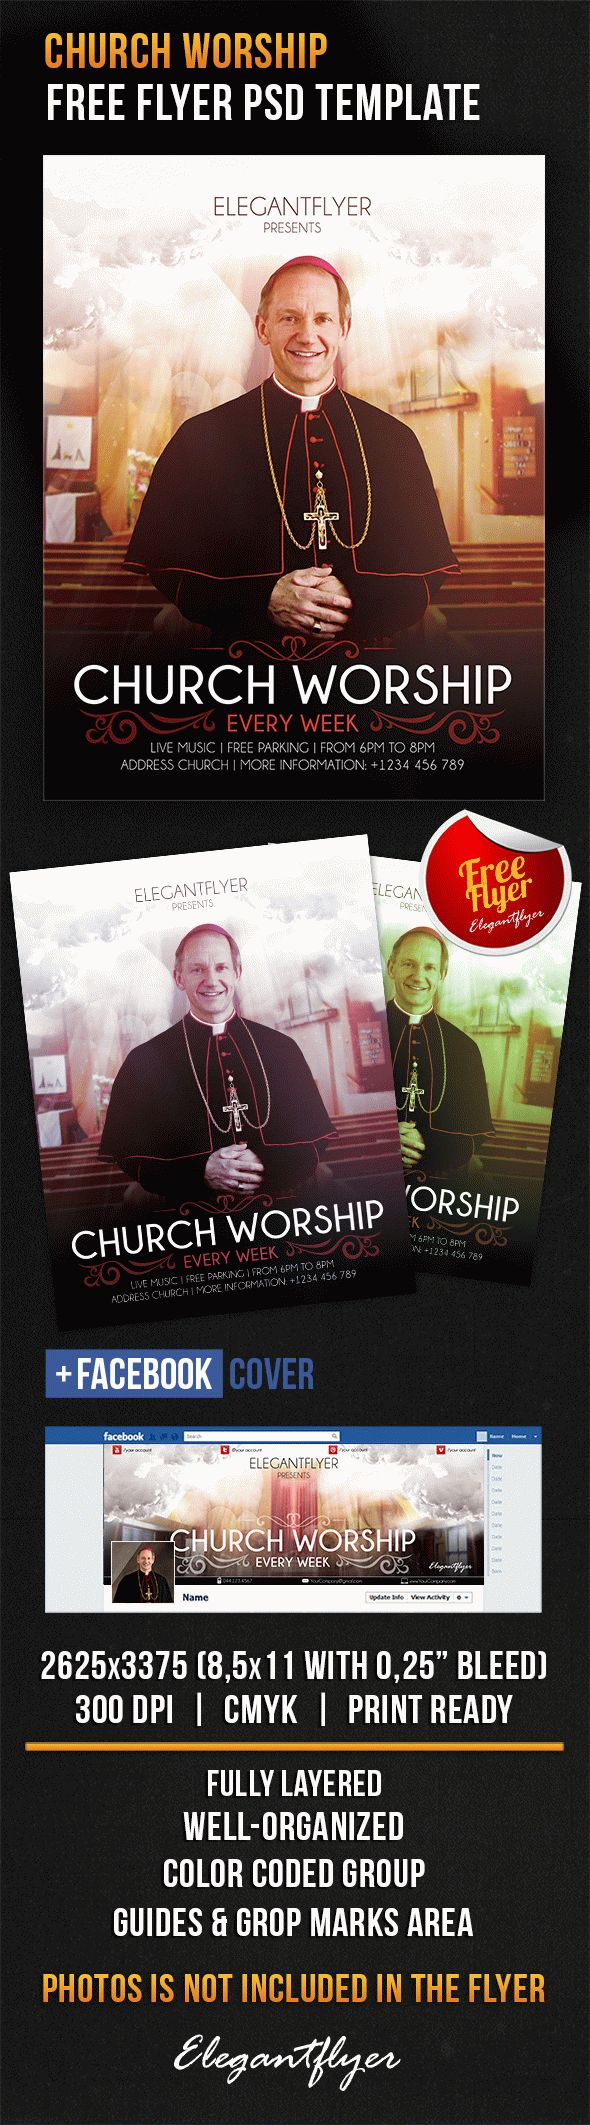 church worship  u2013 free flyer psd template  u2013 by elegantflyer